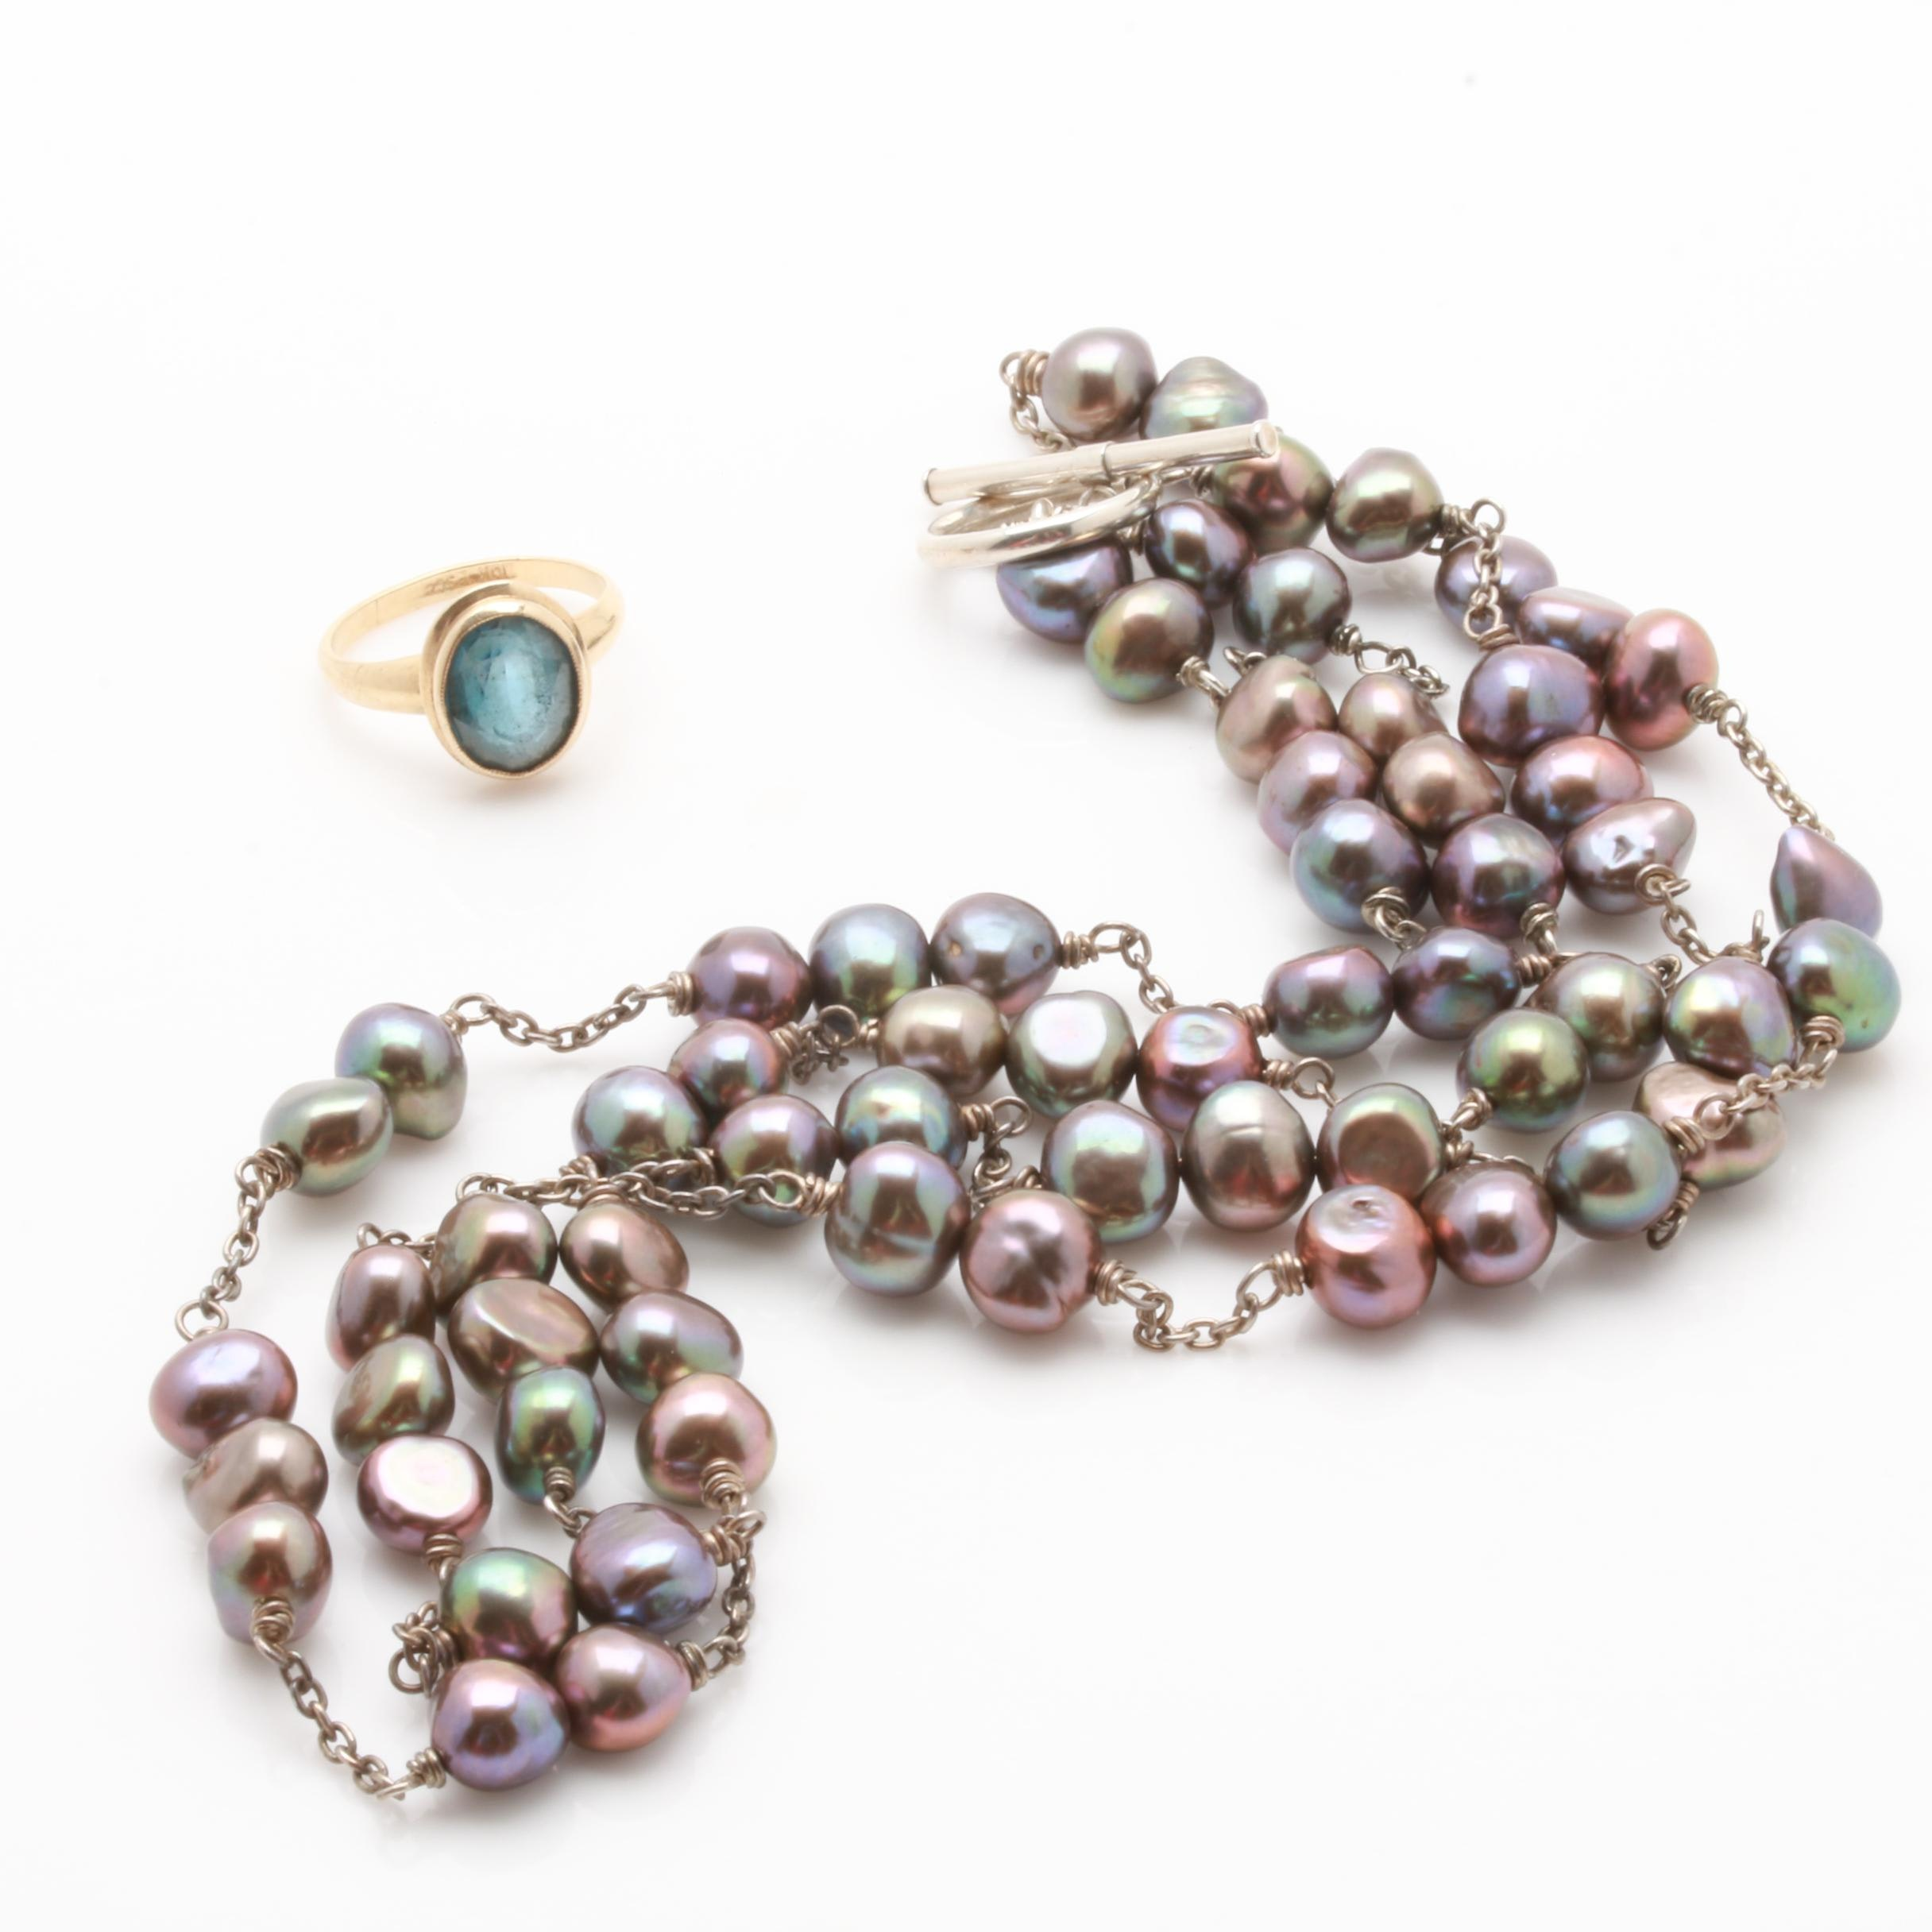 10K Yellow Gold Blue Topaz Ring and Sterling Silver Cultured Pearl Necklace